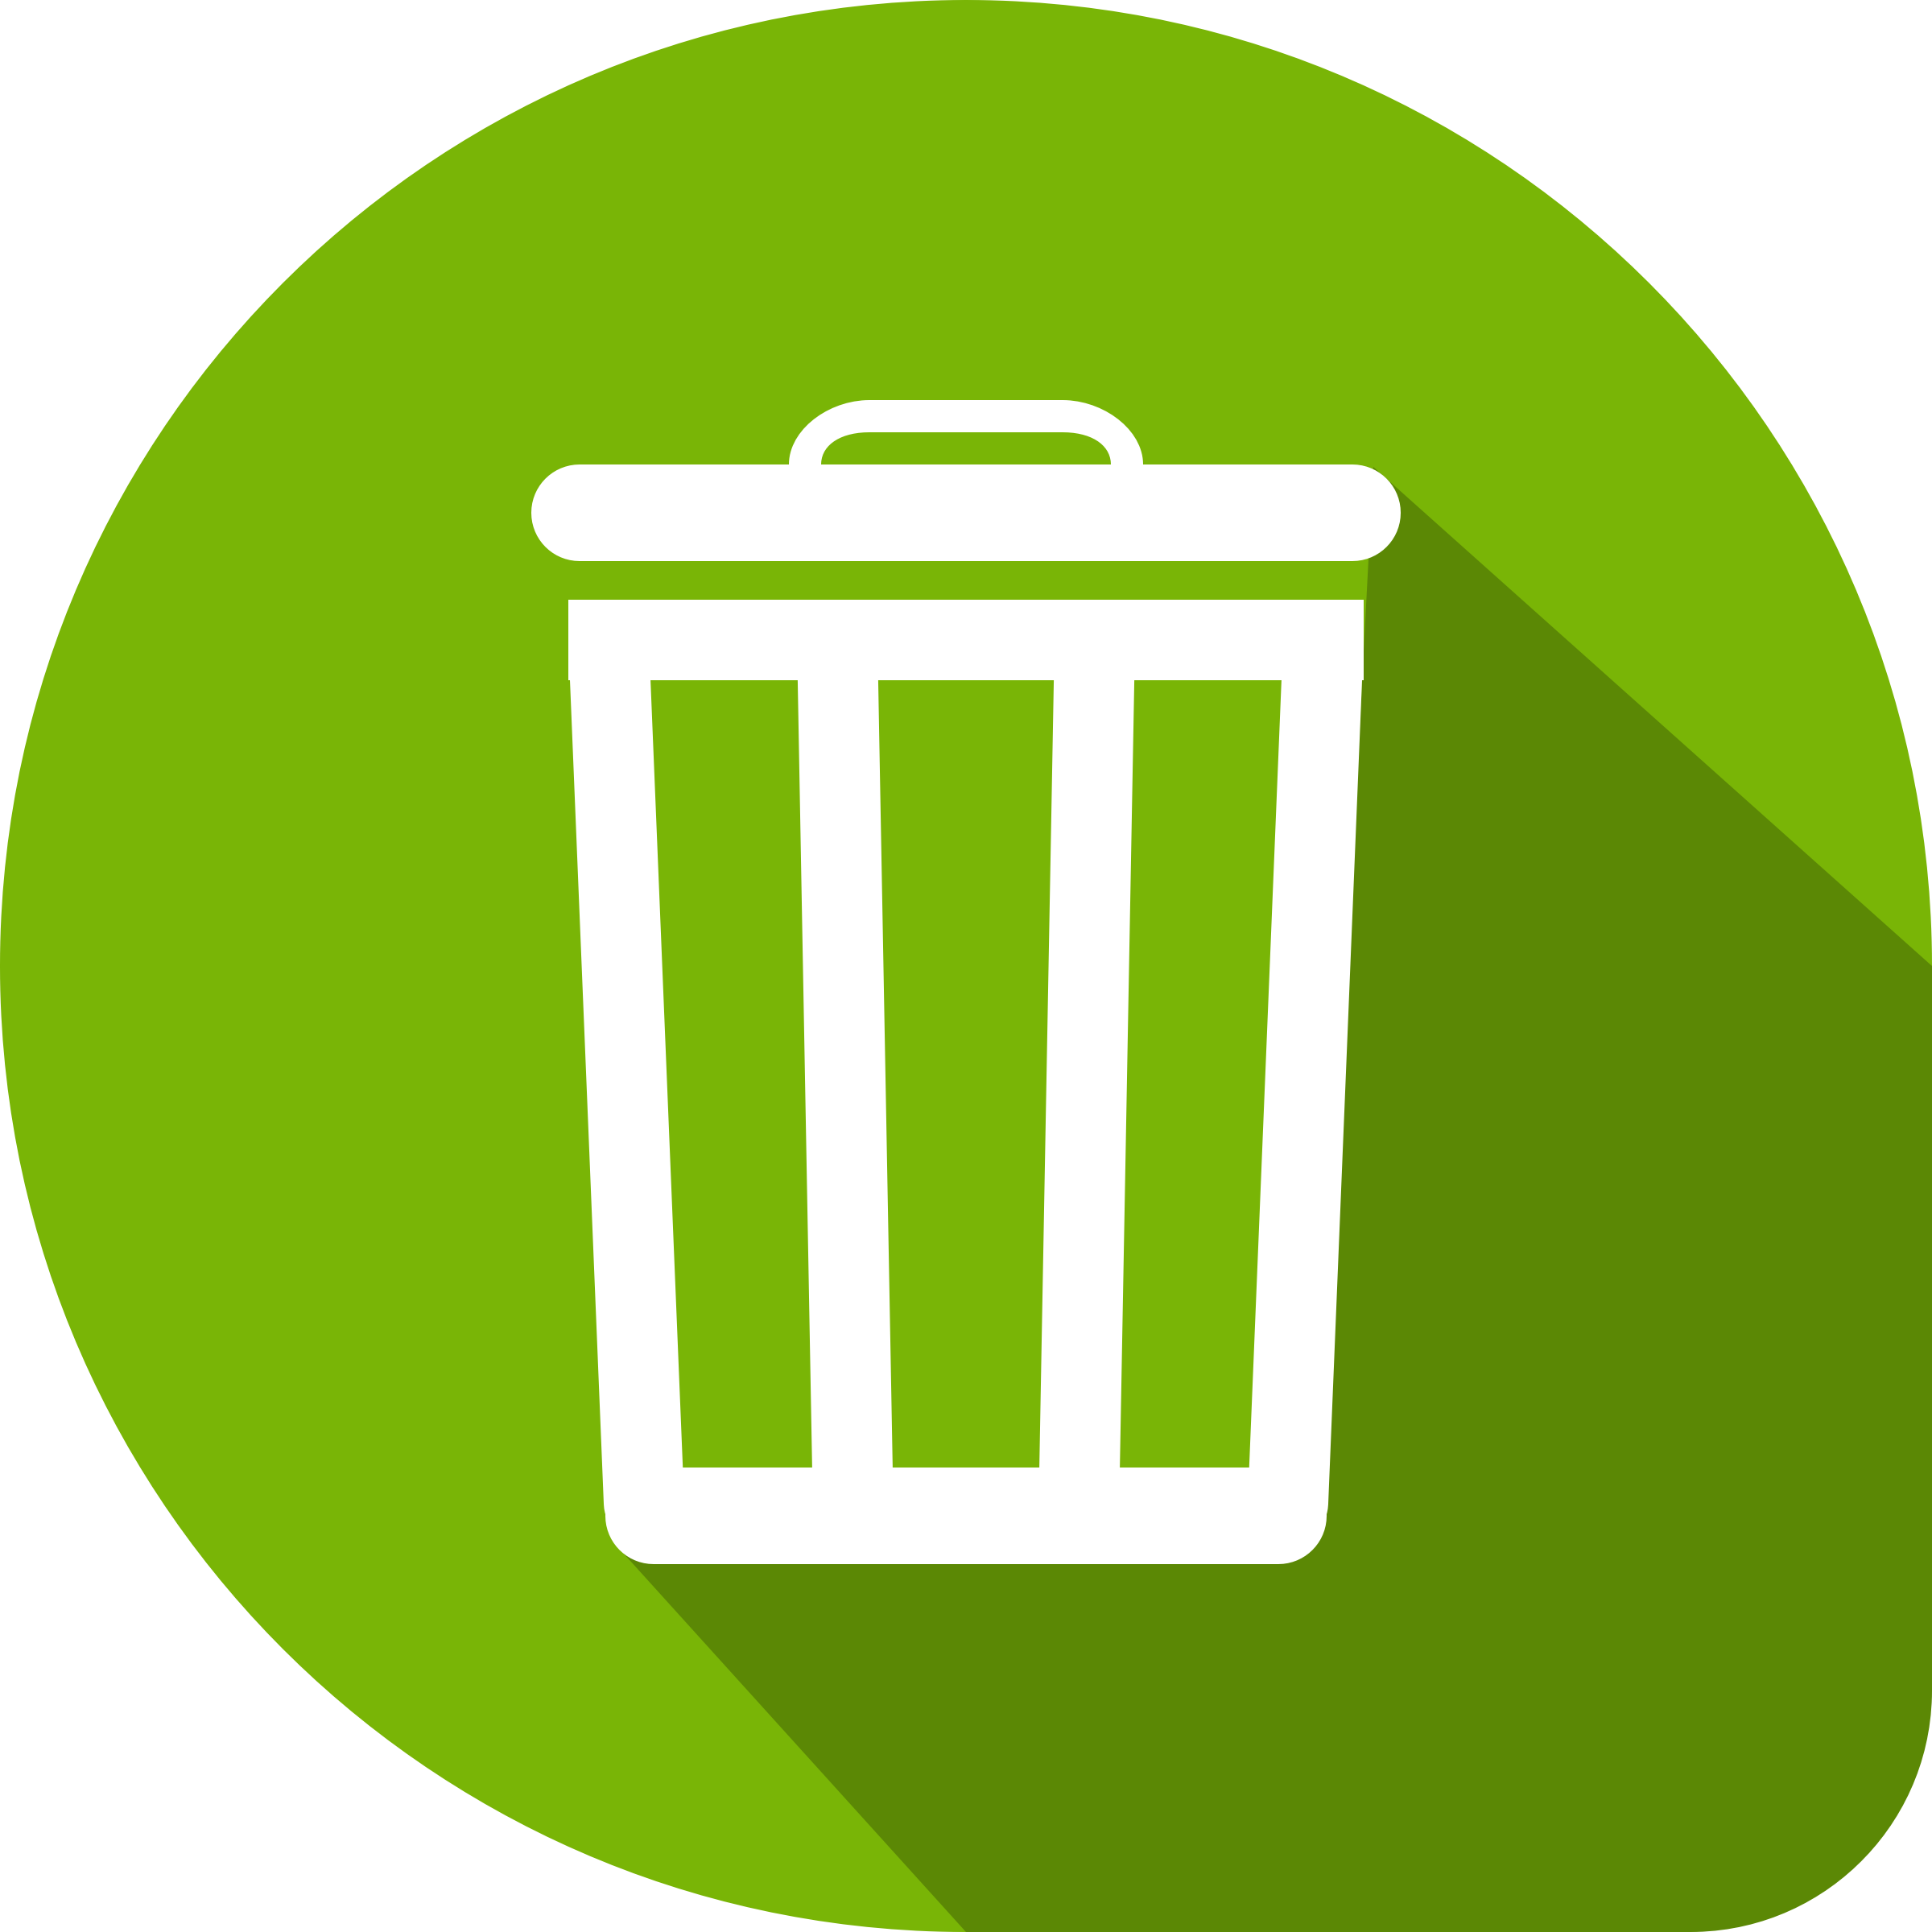 Recycle bin icon by acagastya